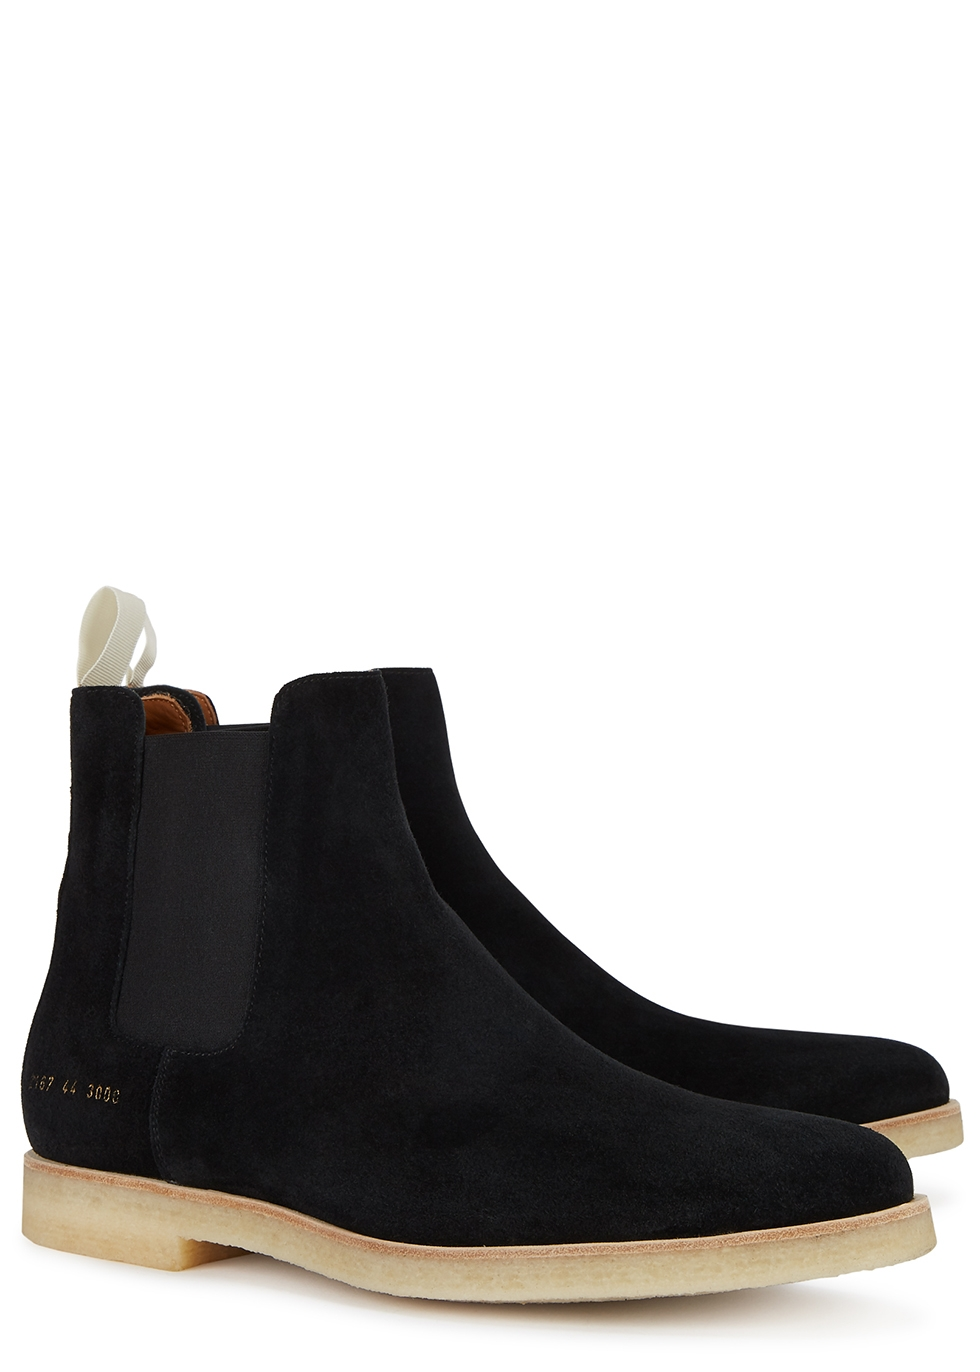 Common Projects Black brushed suede